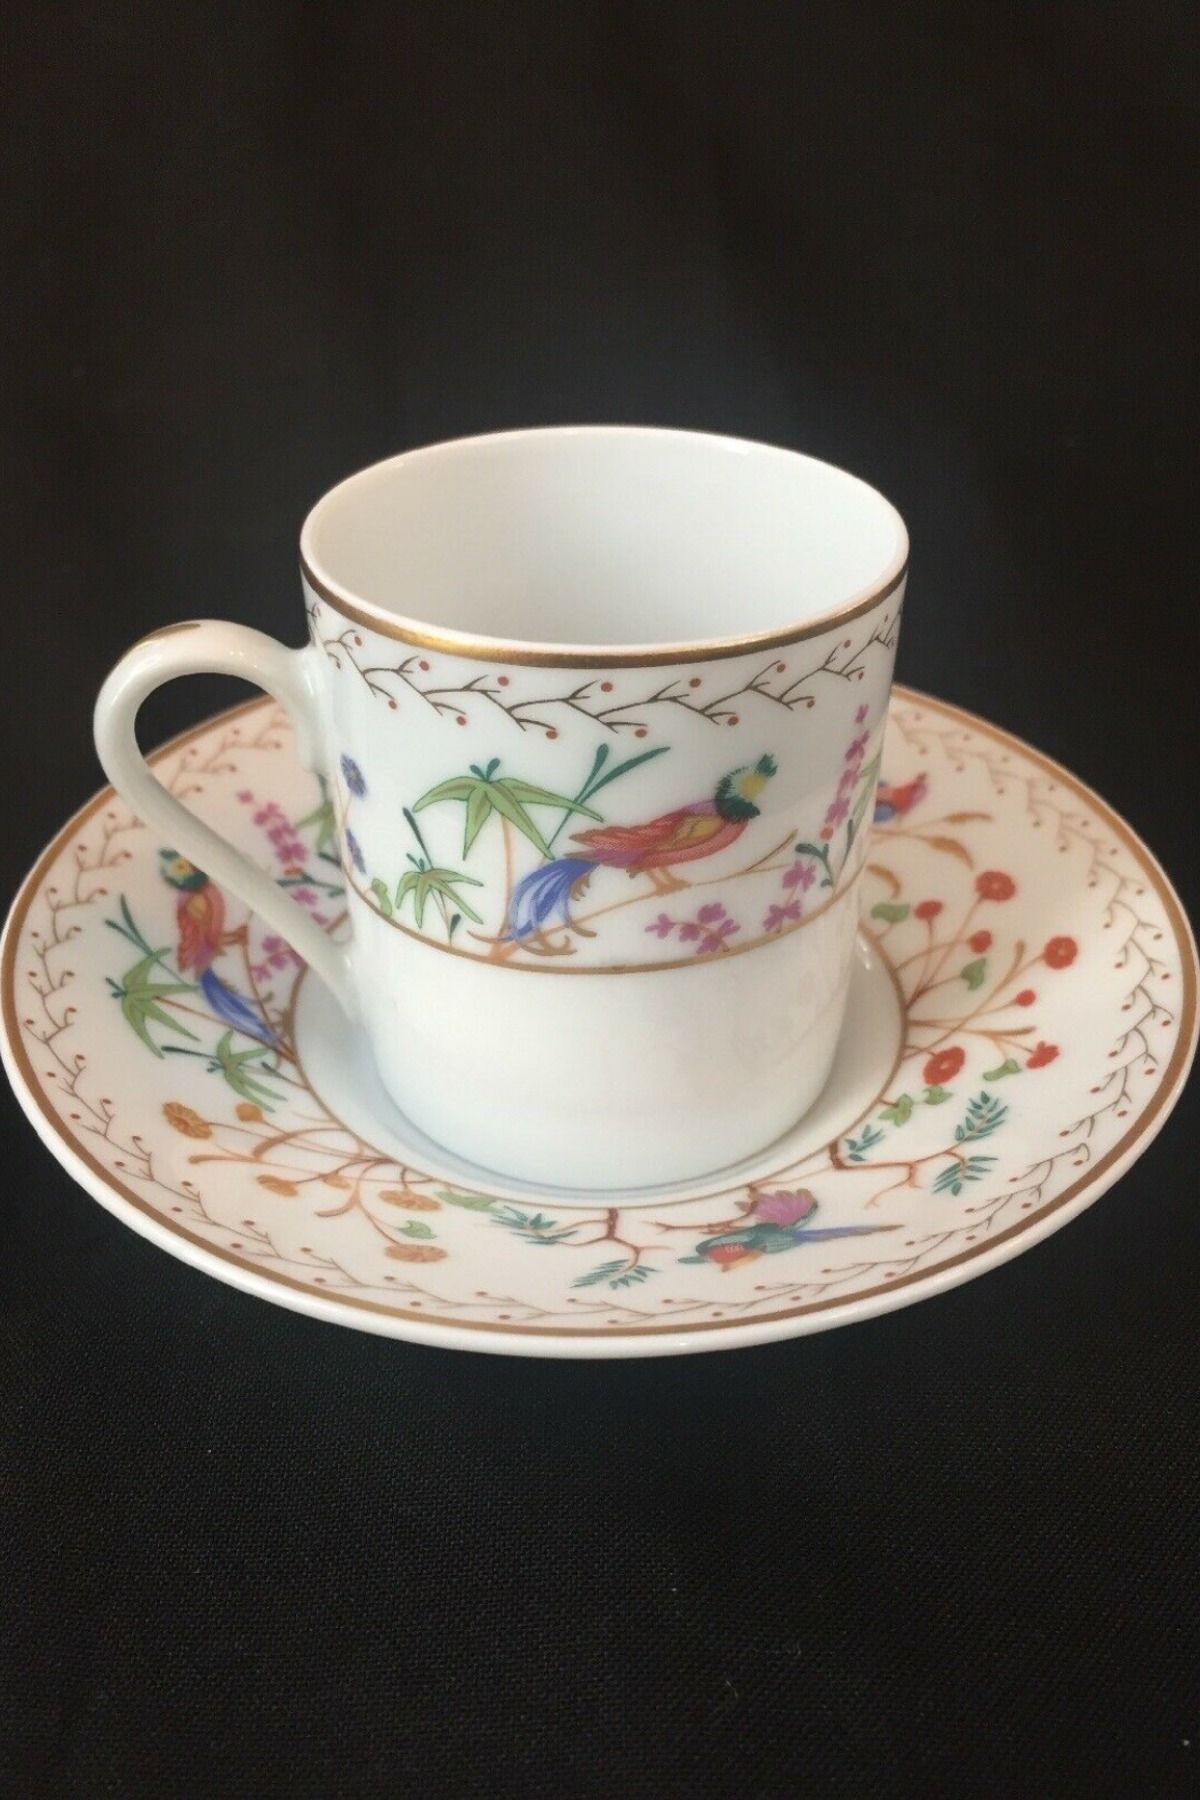 Tiffany Audubon Limoges Demitasse Cup And Saucer Tea Cups Vintage Tea Cups China Tea Cups